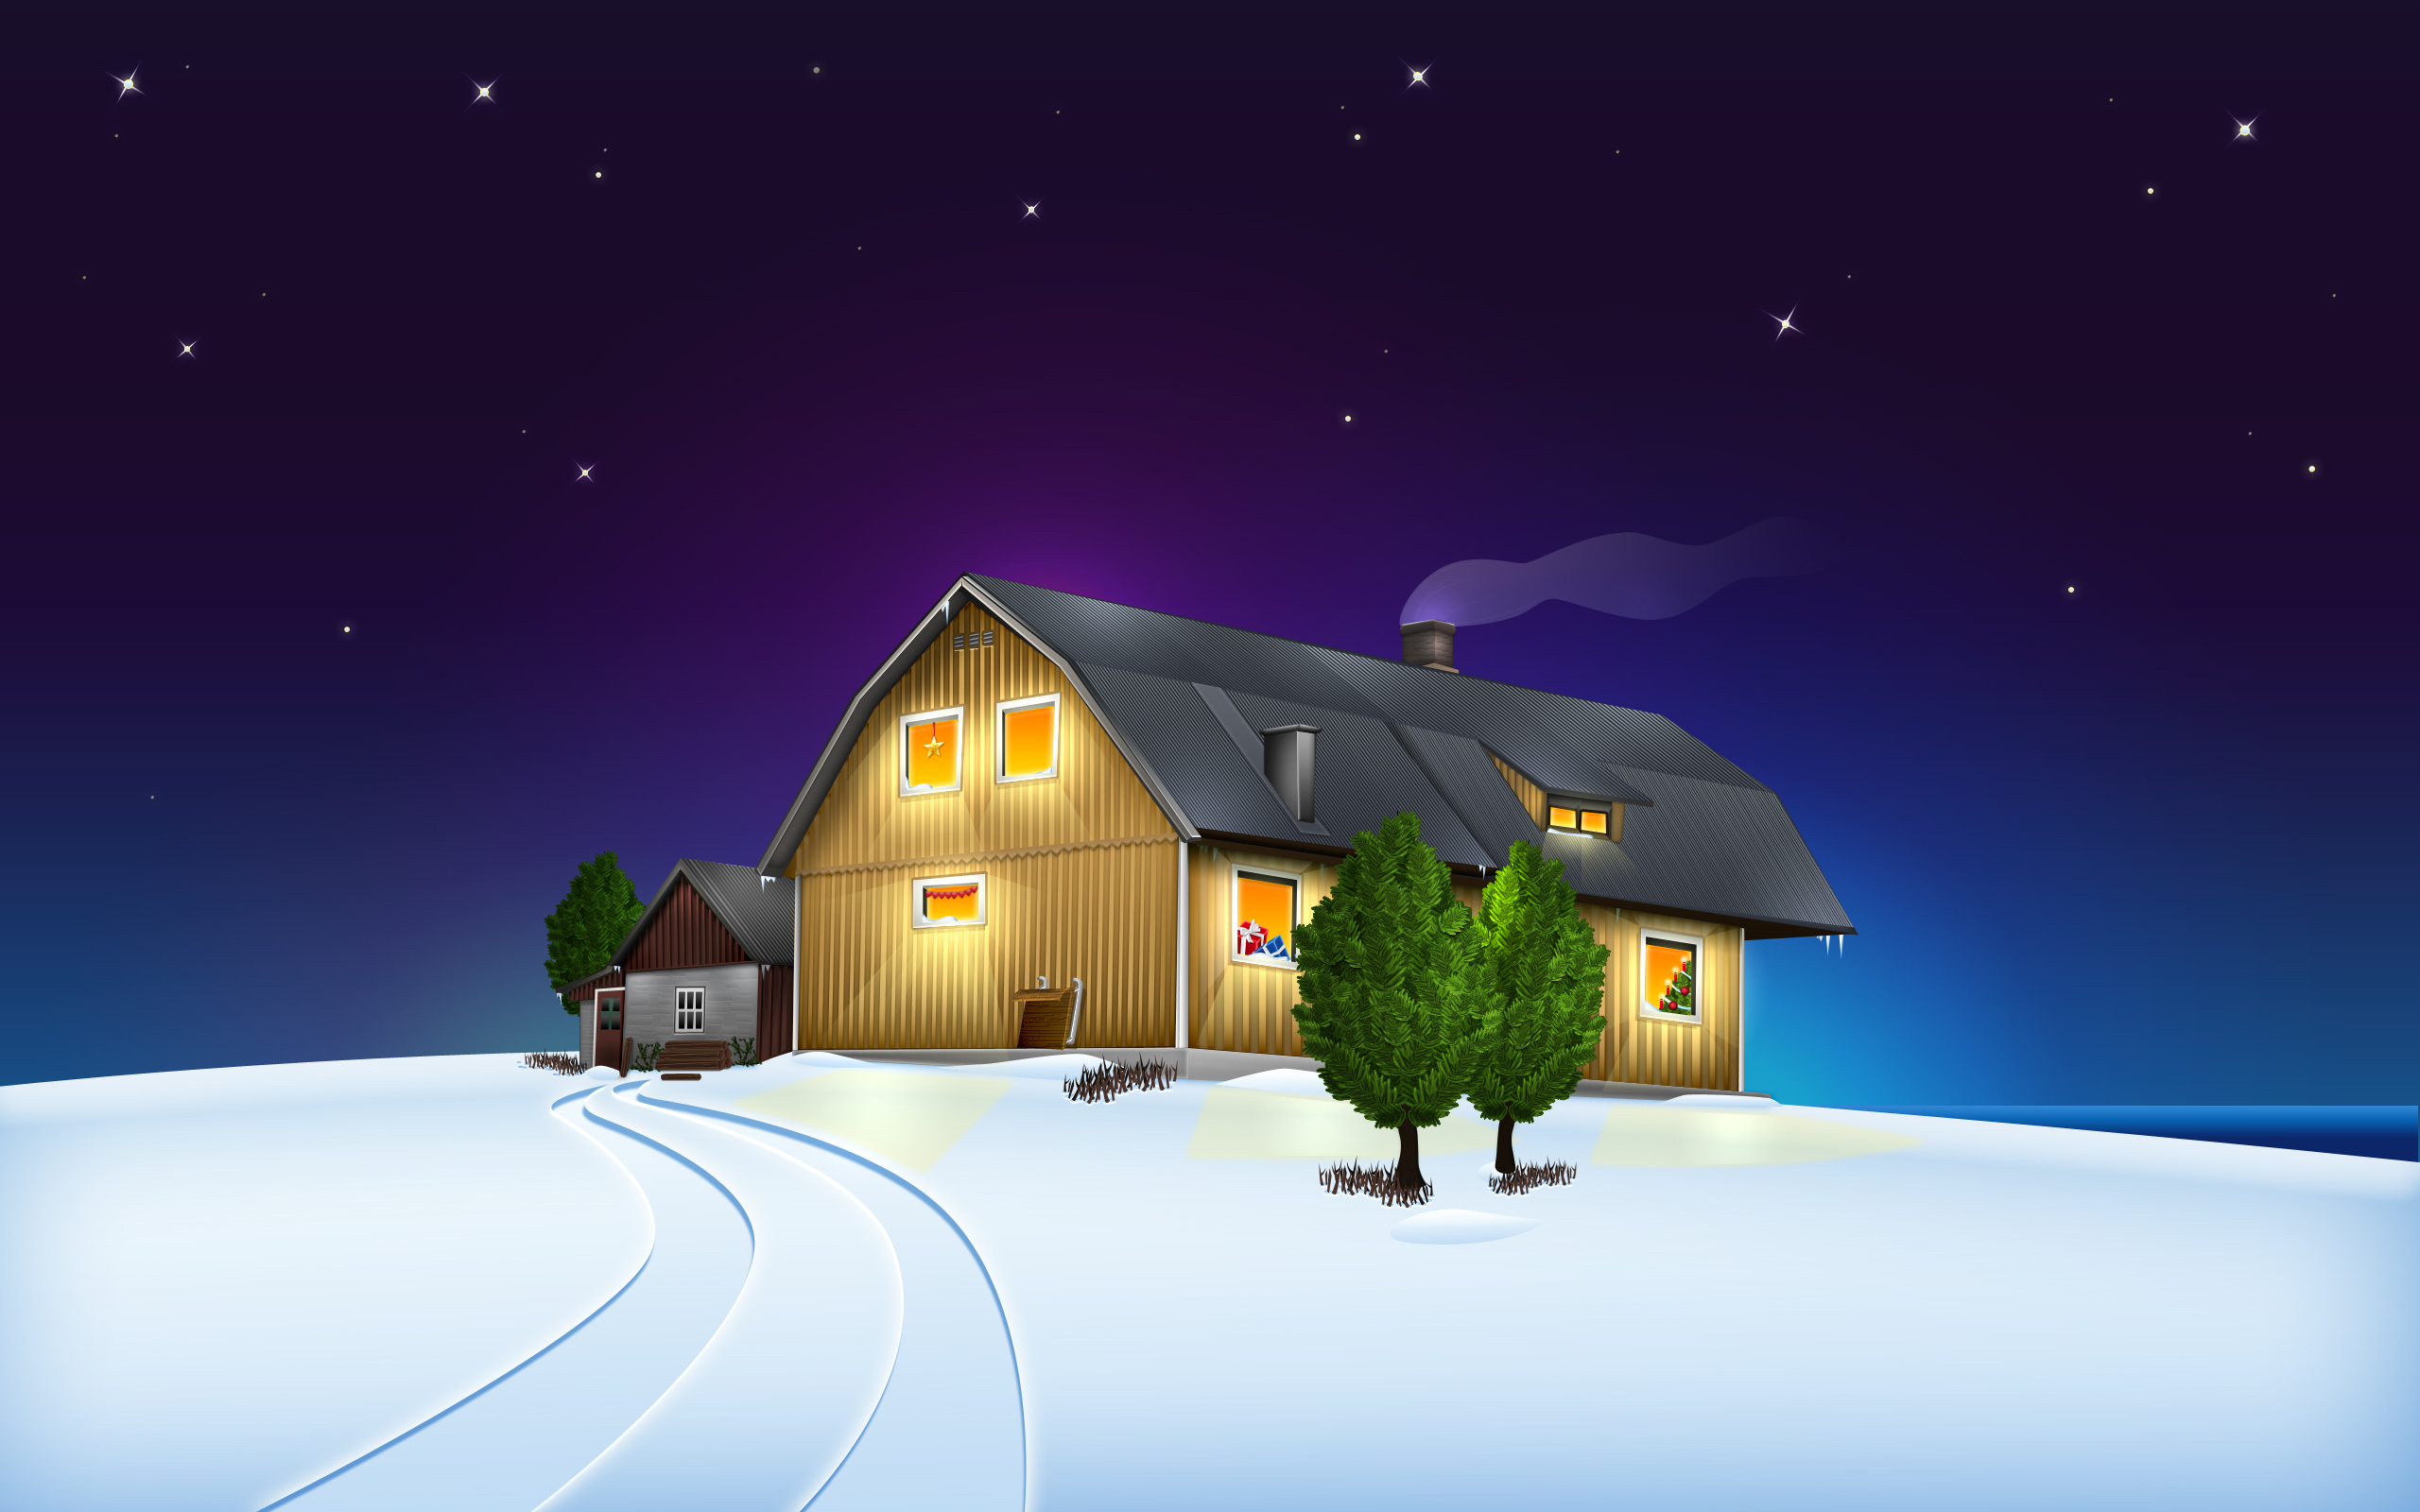 2560x1600 xmas at home desktop pc and mac wallpaper for Wallpaper live home